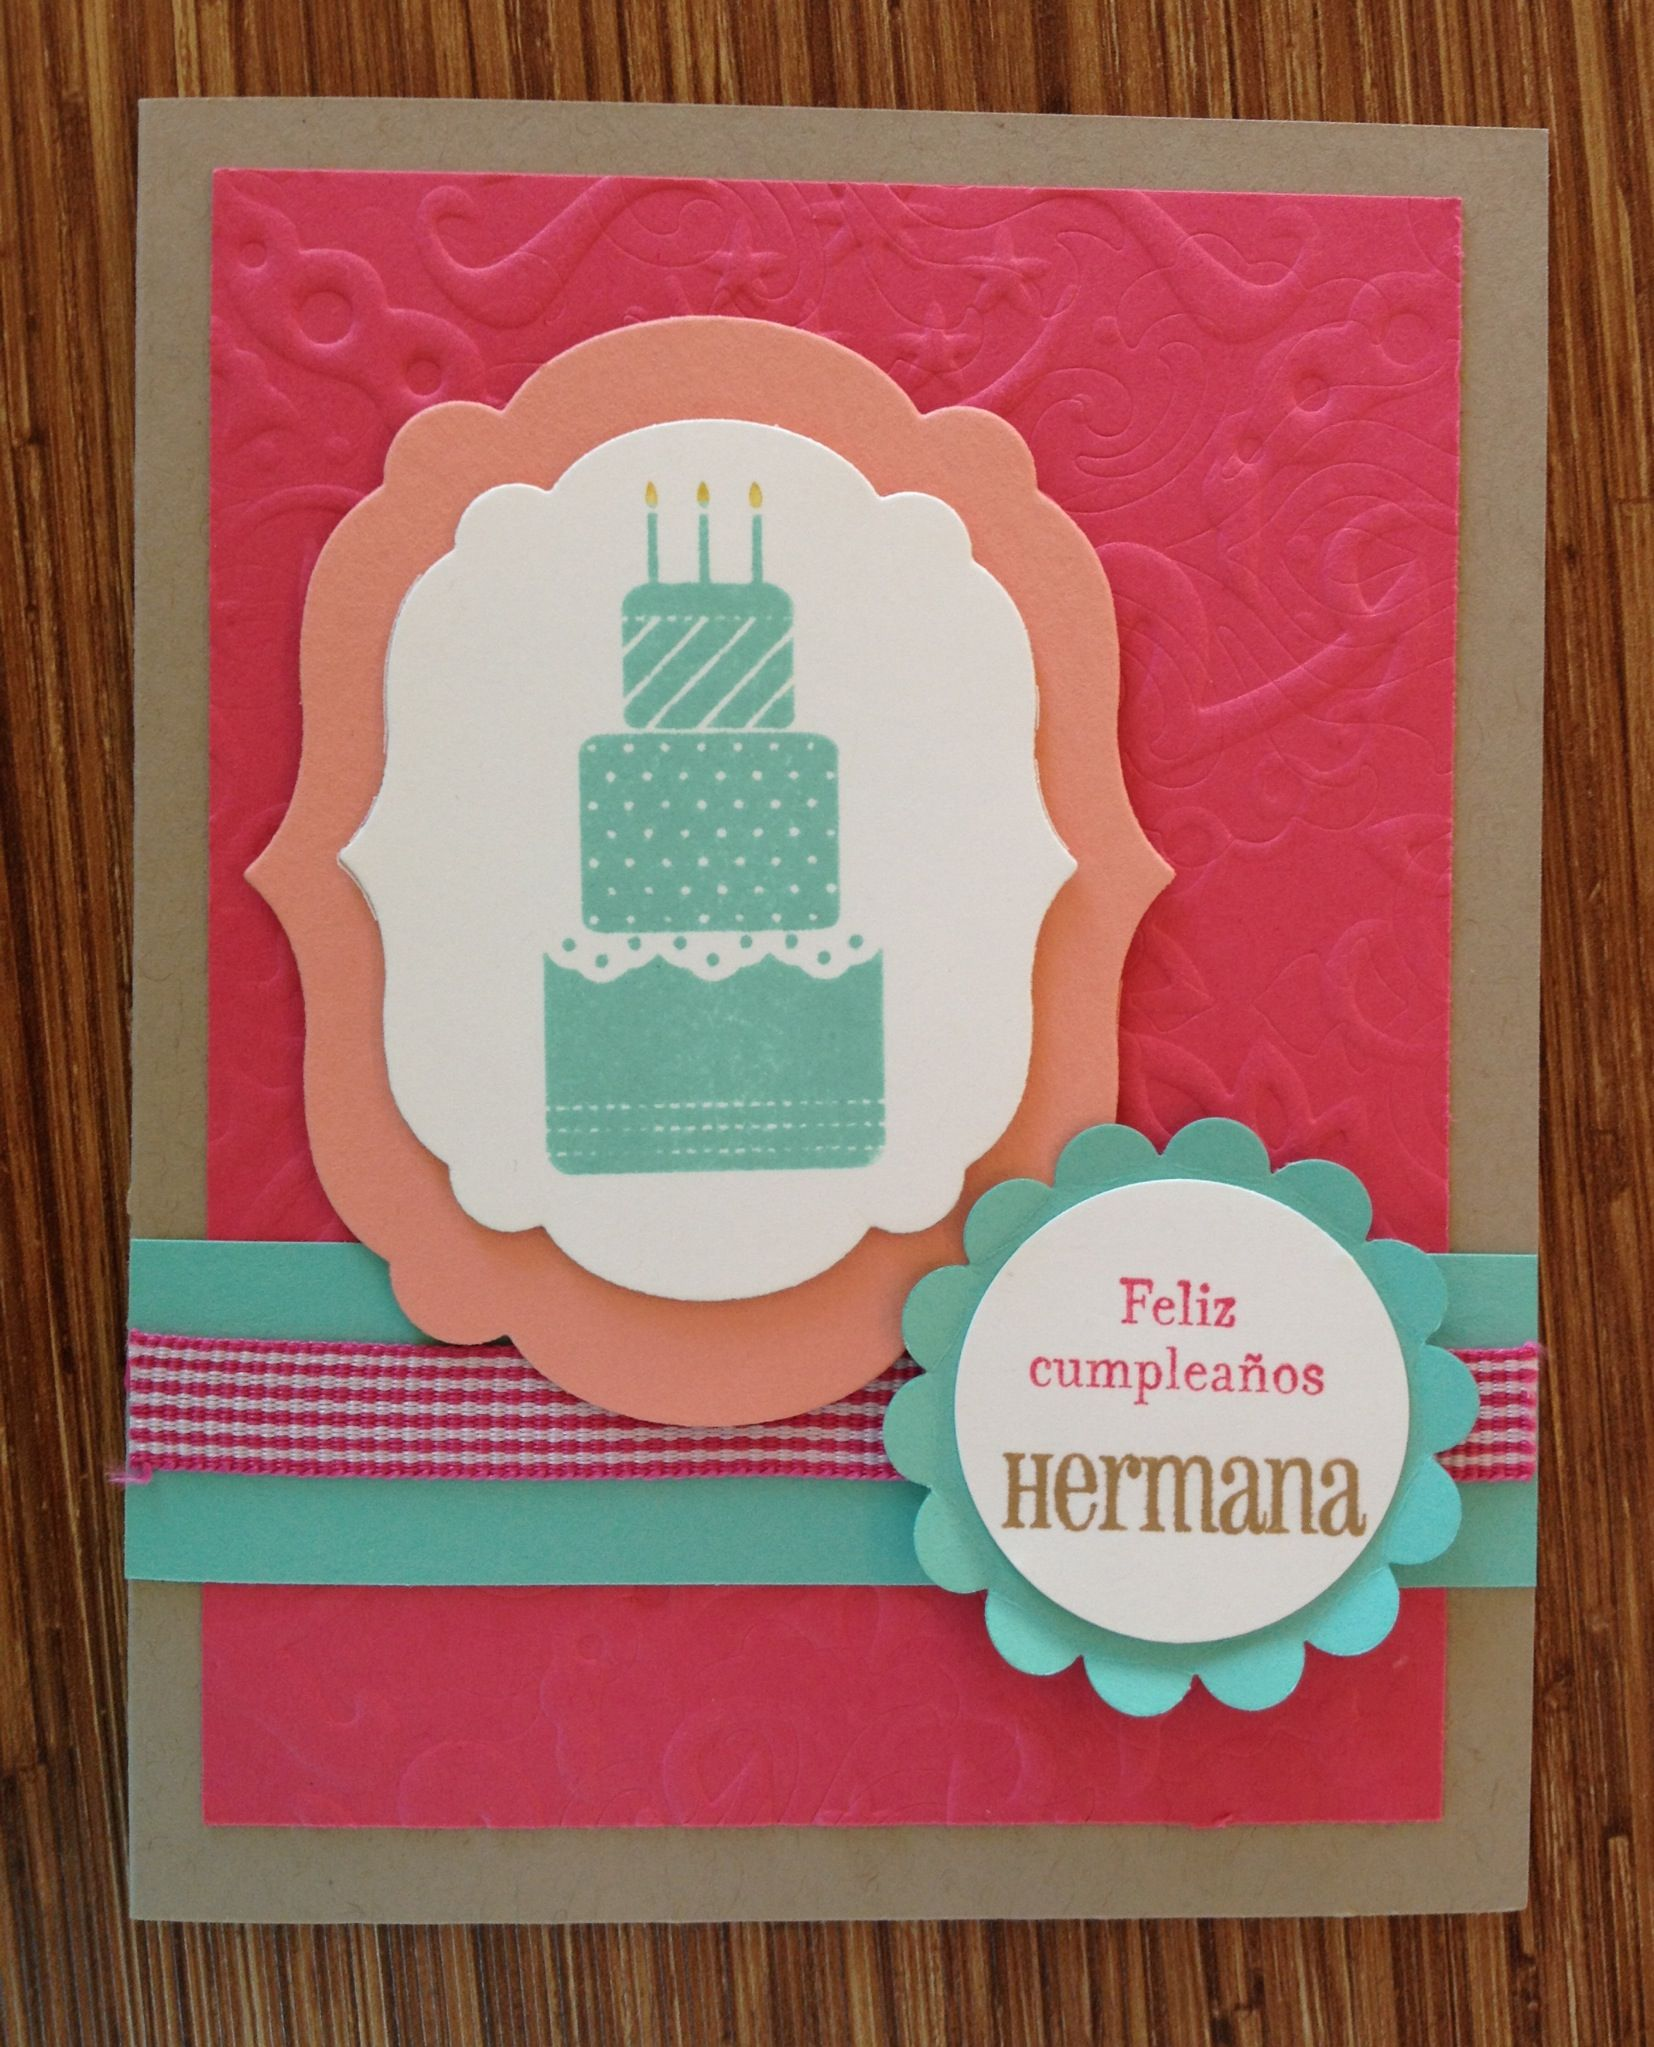 Happy Birthday Embossed Cake Card, Tarjeta de Feliz Cumpleaños para Hermana by Rose Marie Jusino